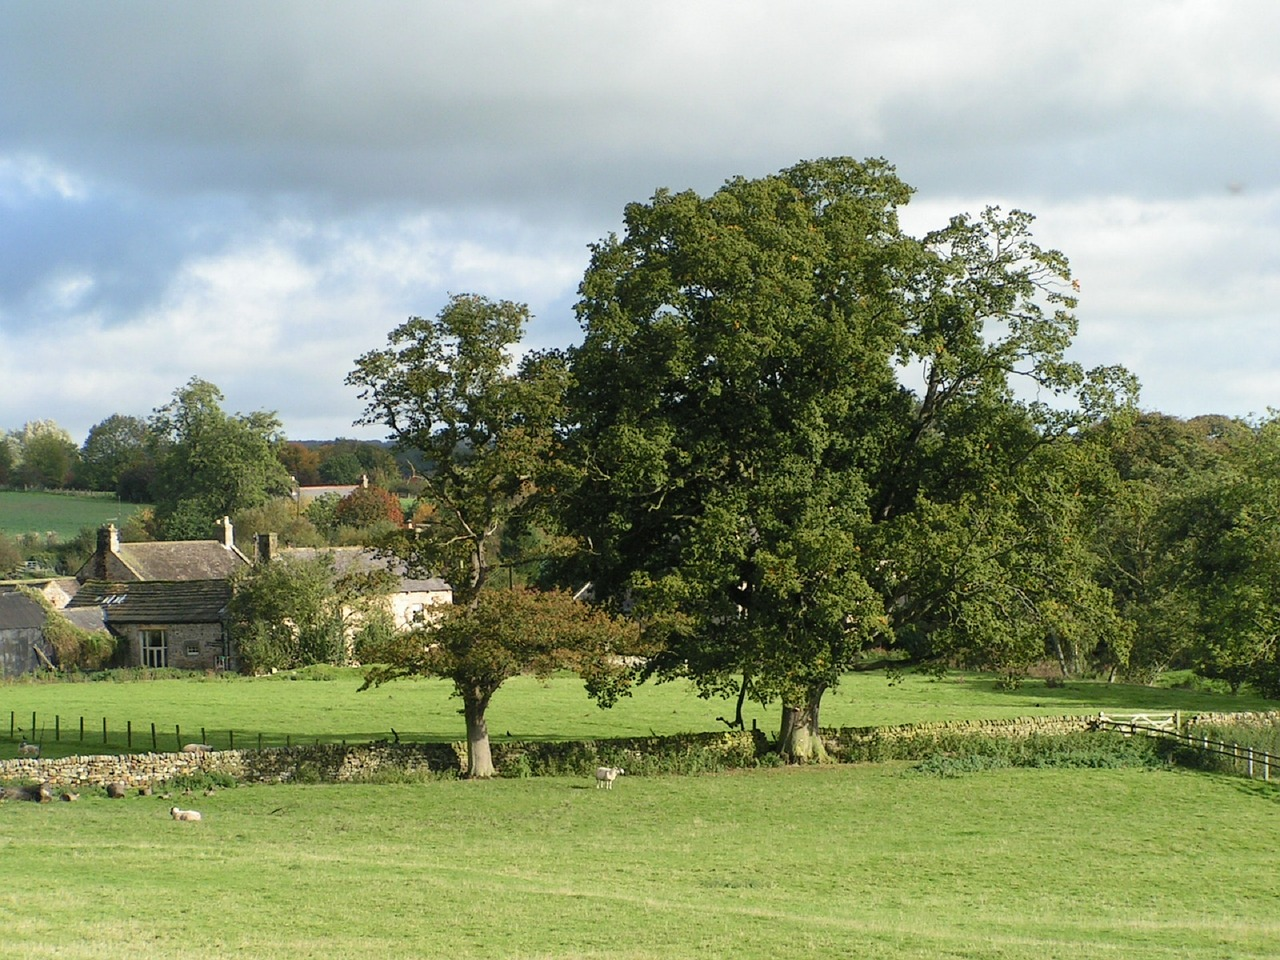 Green belt building: British countryside